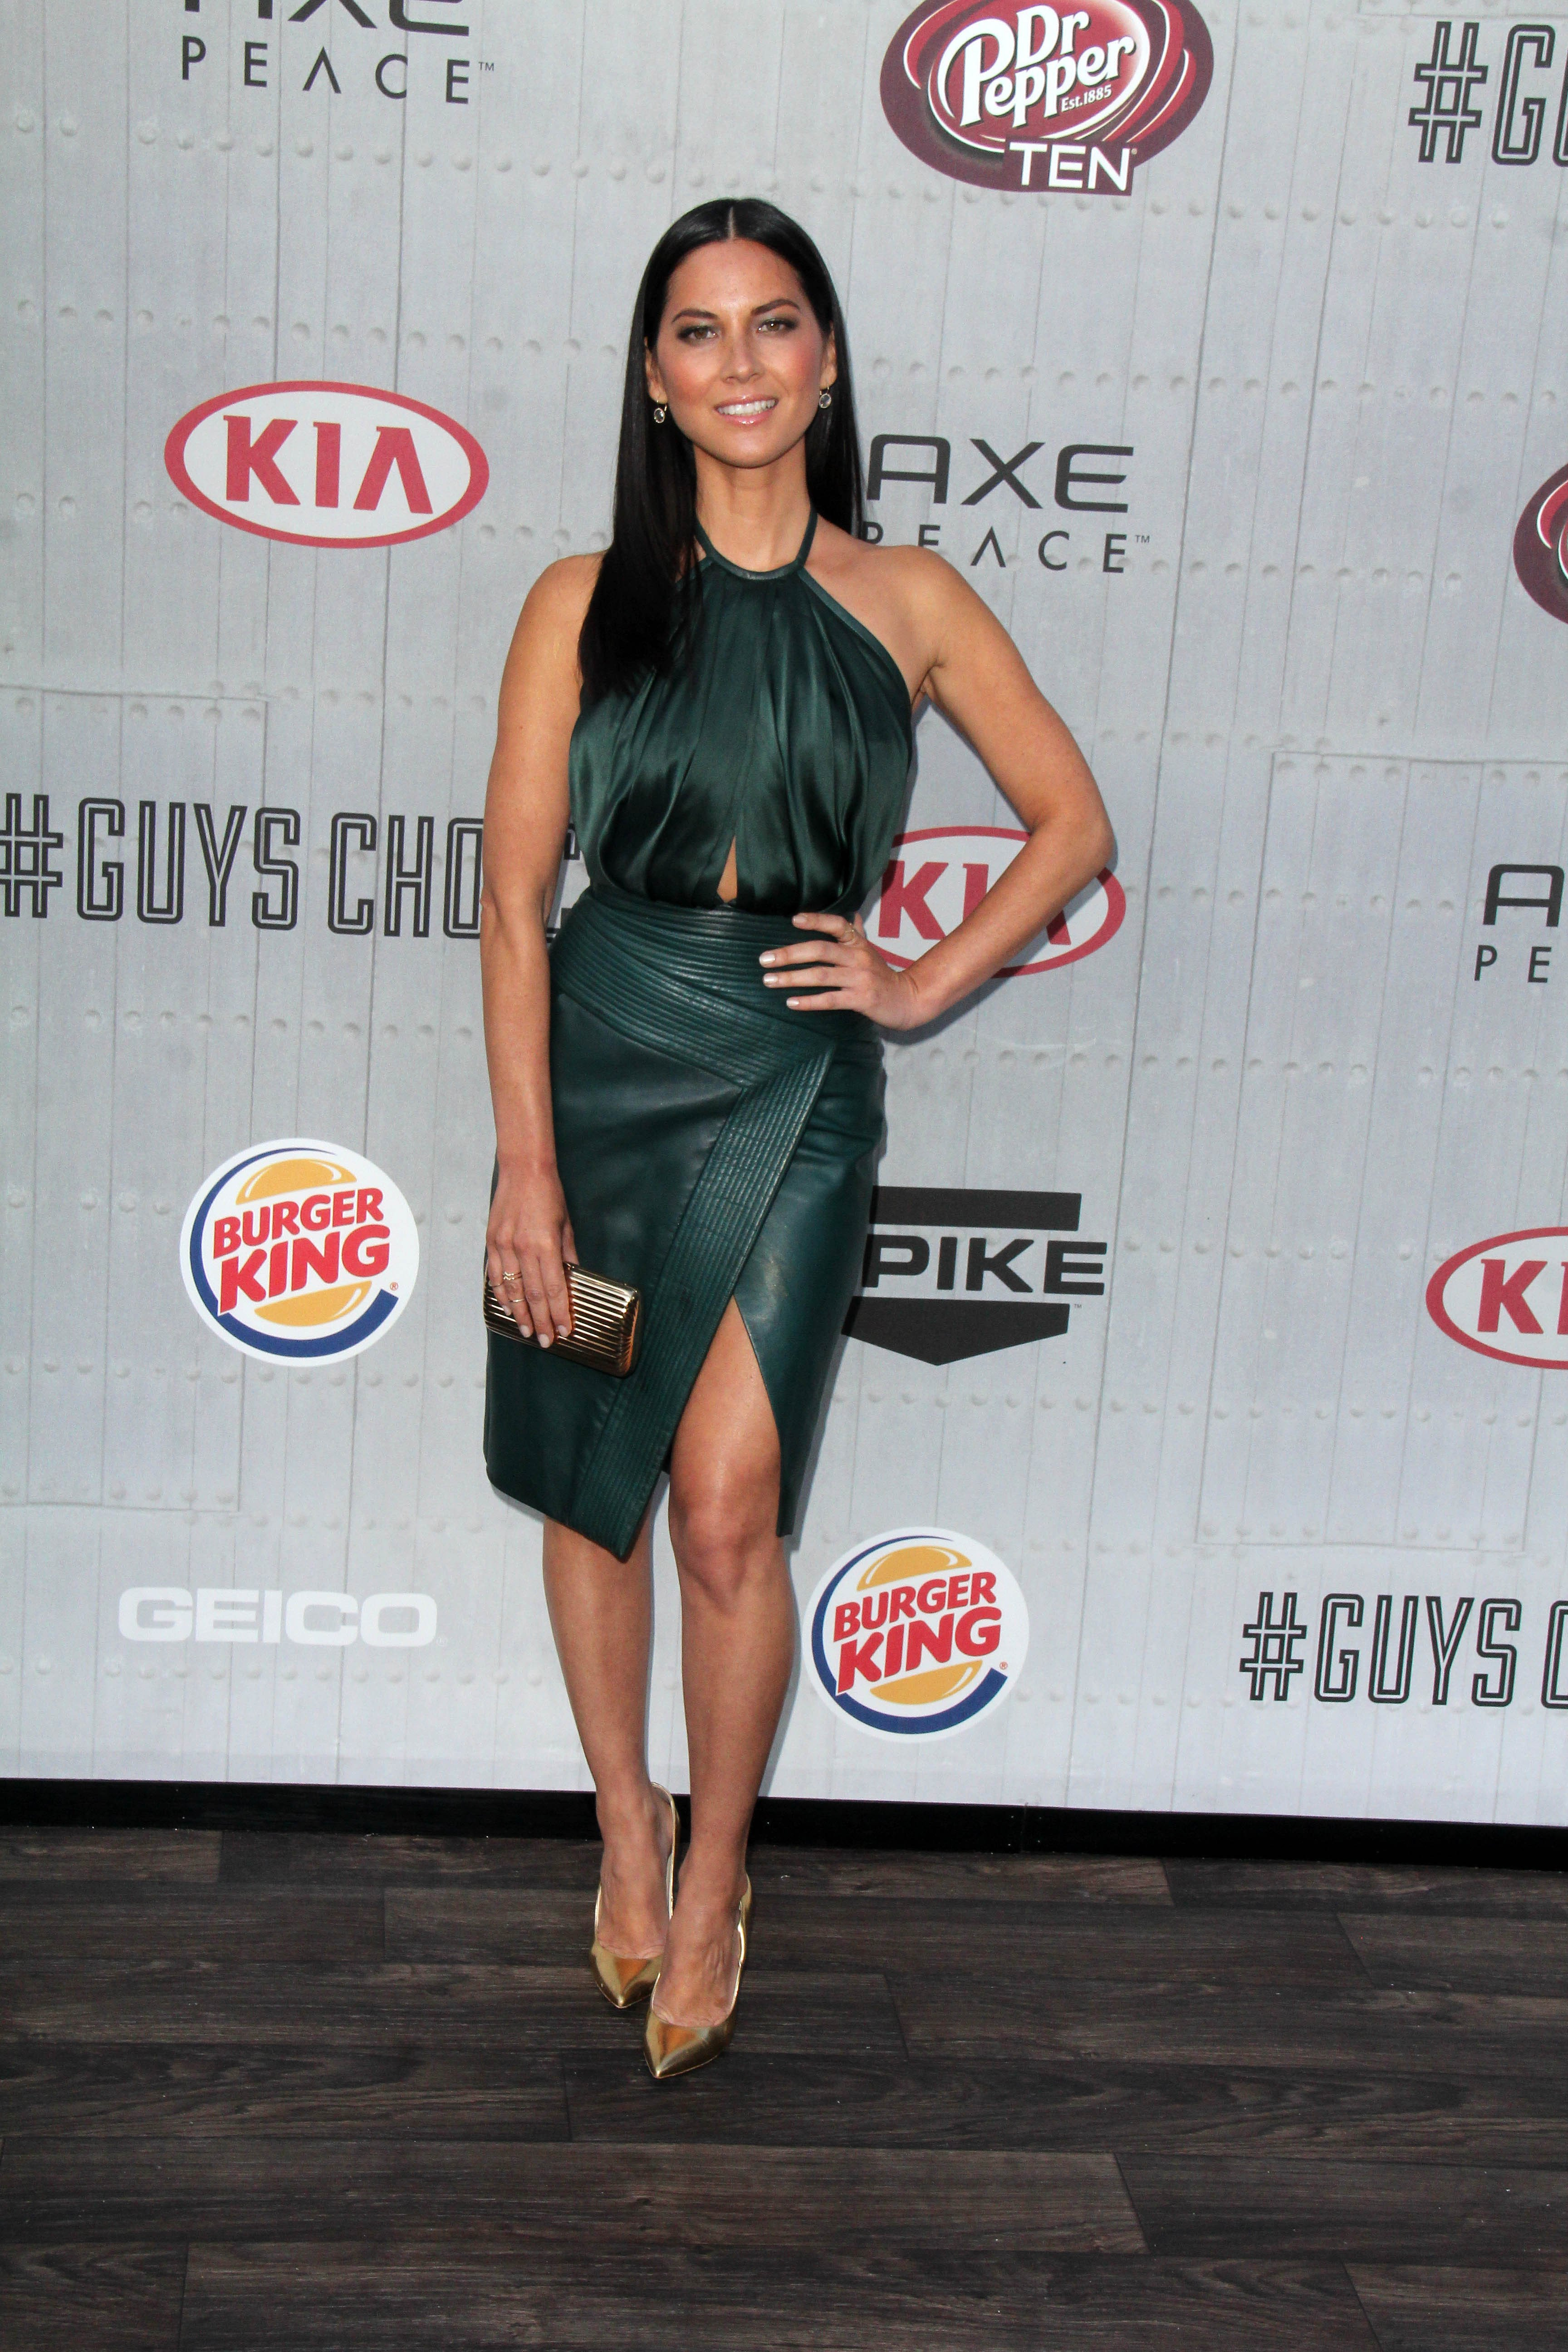 """Actress Oliva Munn at the Spike TV's """"Guys Choice 2014"""" Awards at Sony Studios on June 7, 2014 in Culver City, California   Photo: Shutterstock"""